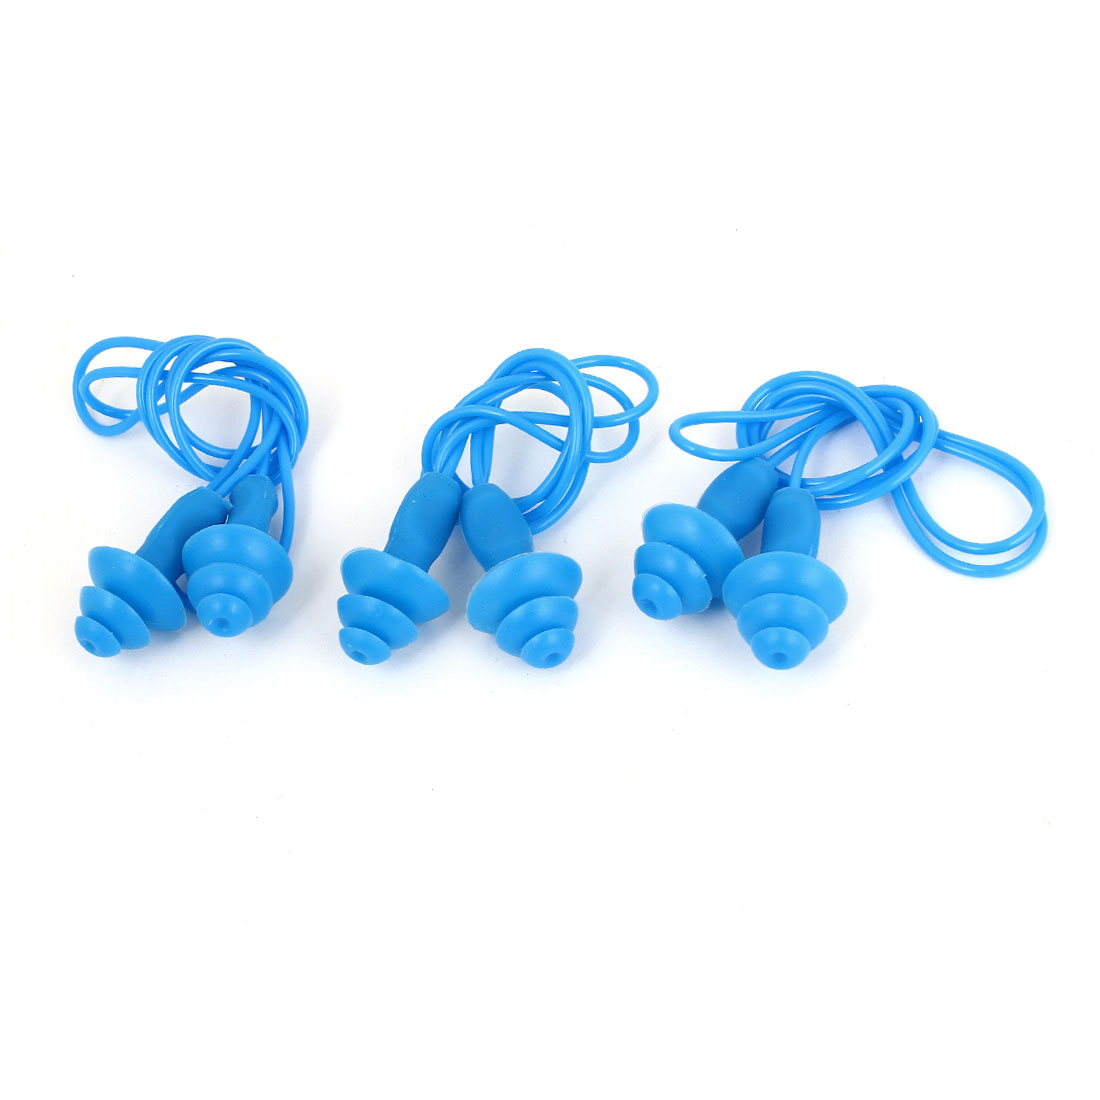 3 Pcs Silicone Round Shaped Wired Waterproof Swimming Earplugs Blue